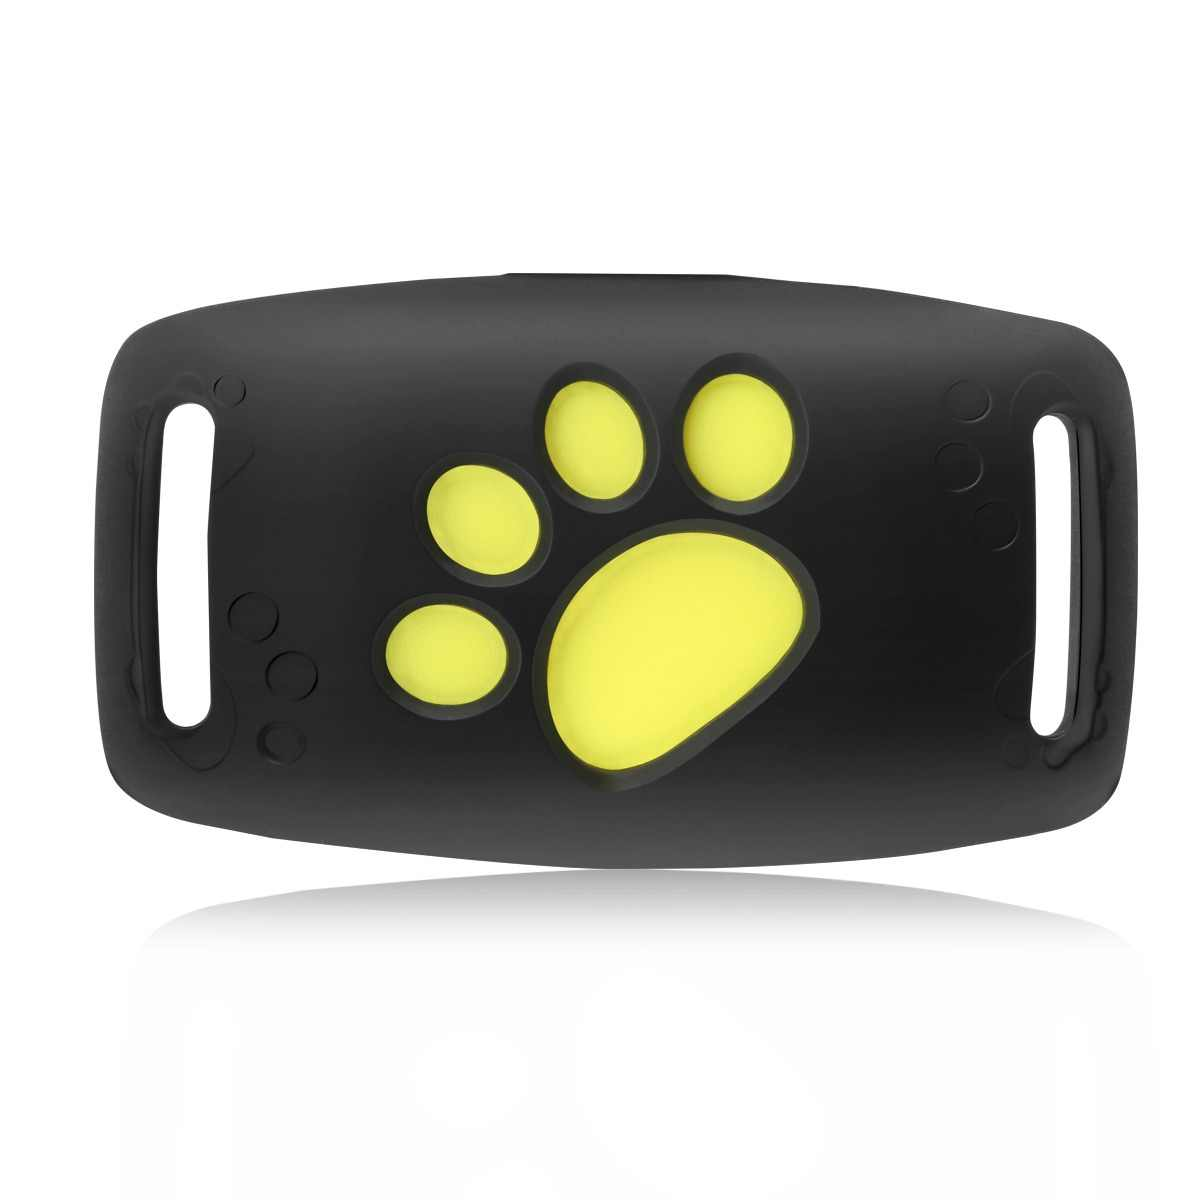 Z8-A-Pet Dog GPS Tracker Dogs Collar Cats GPS Function pet Tracker GPS Water Resistant USB Charging Cable Pet Puppy Suppliers